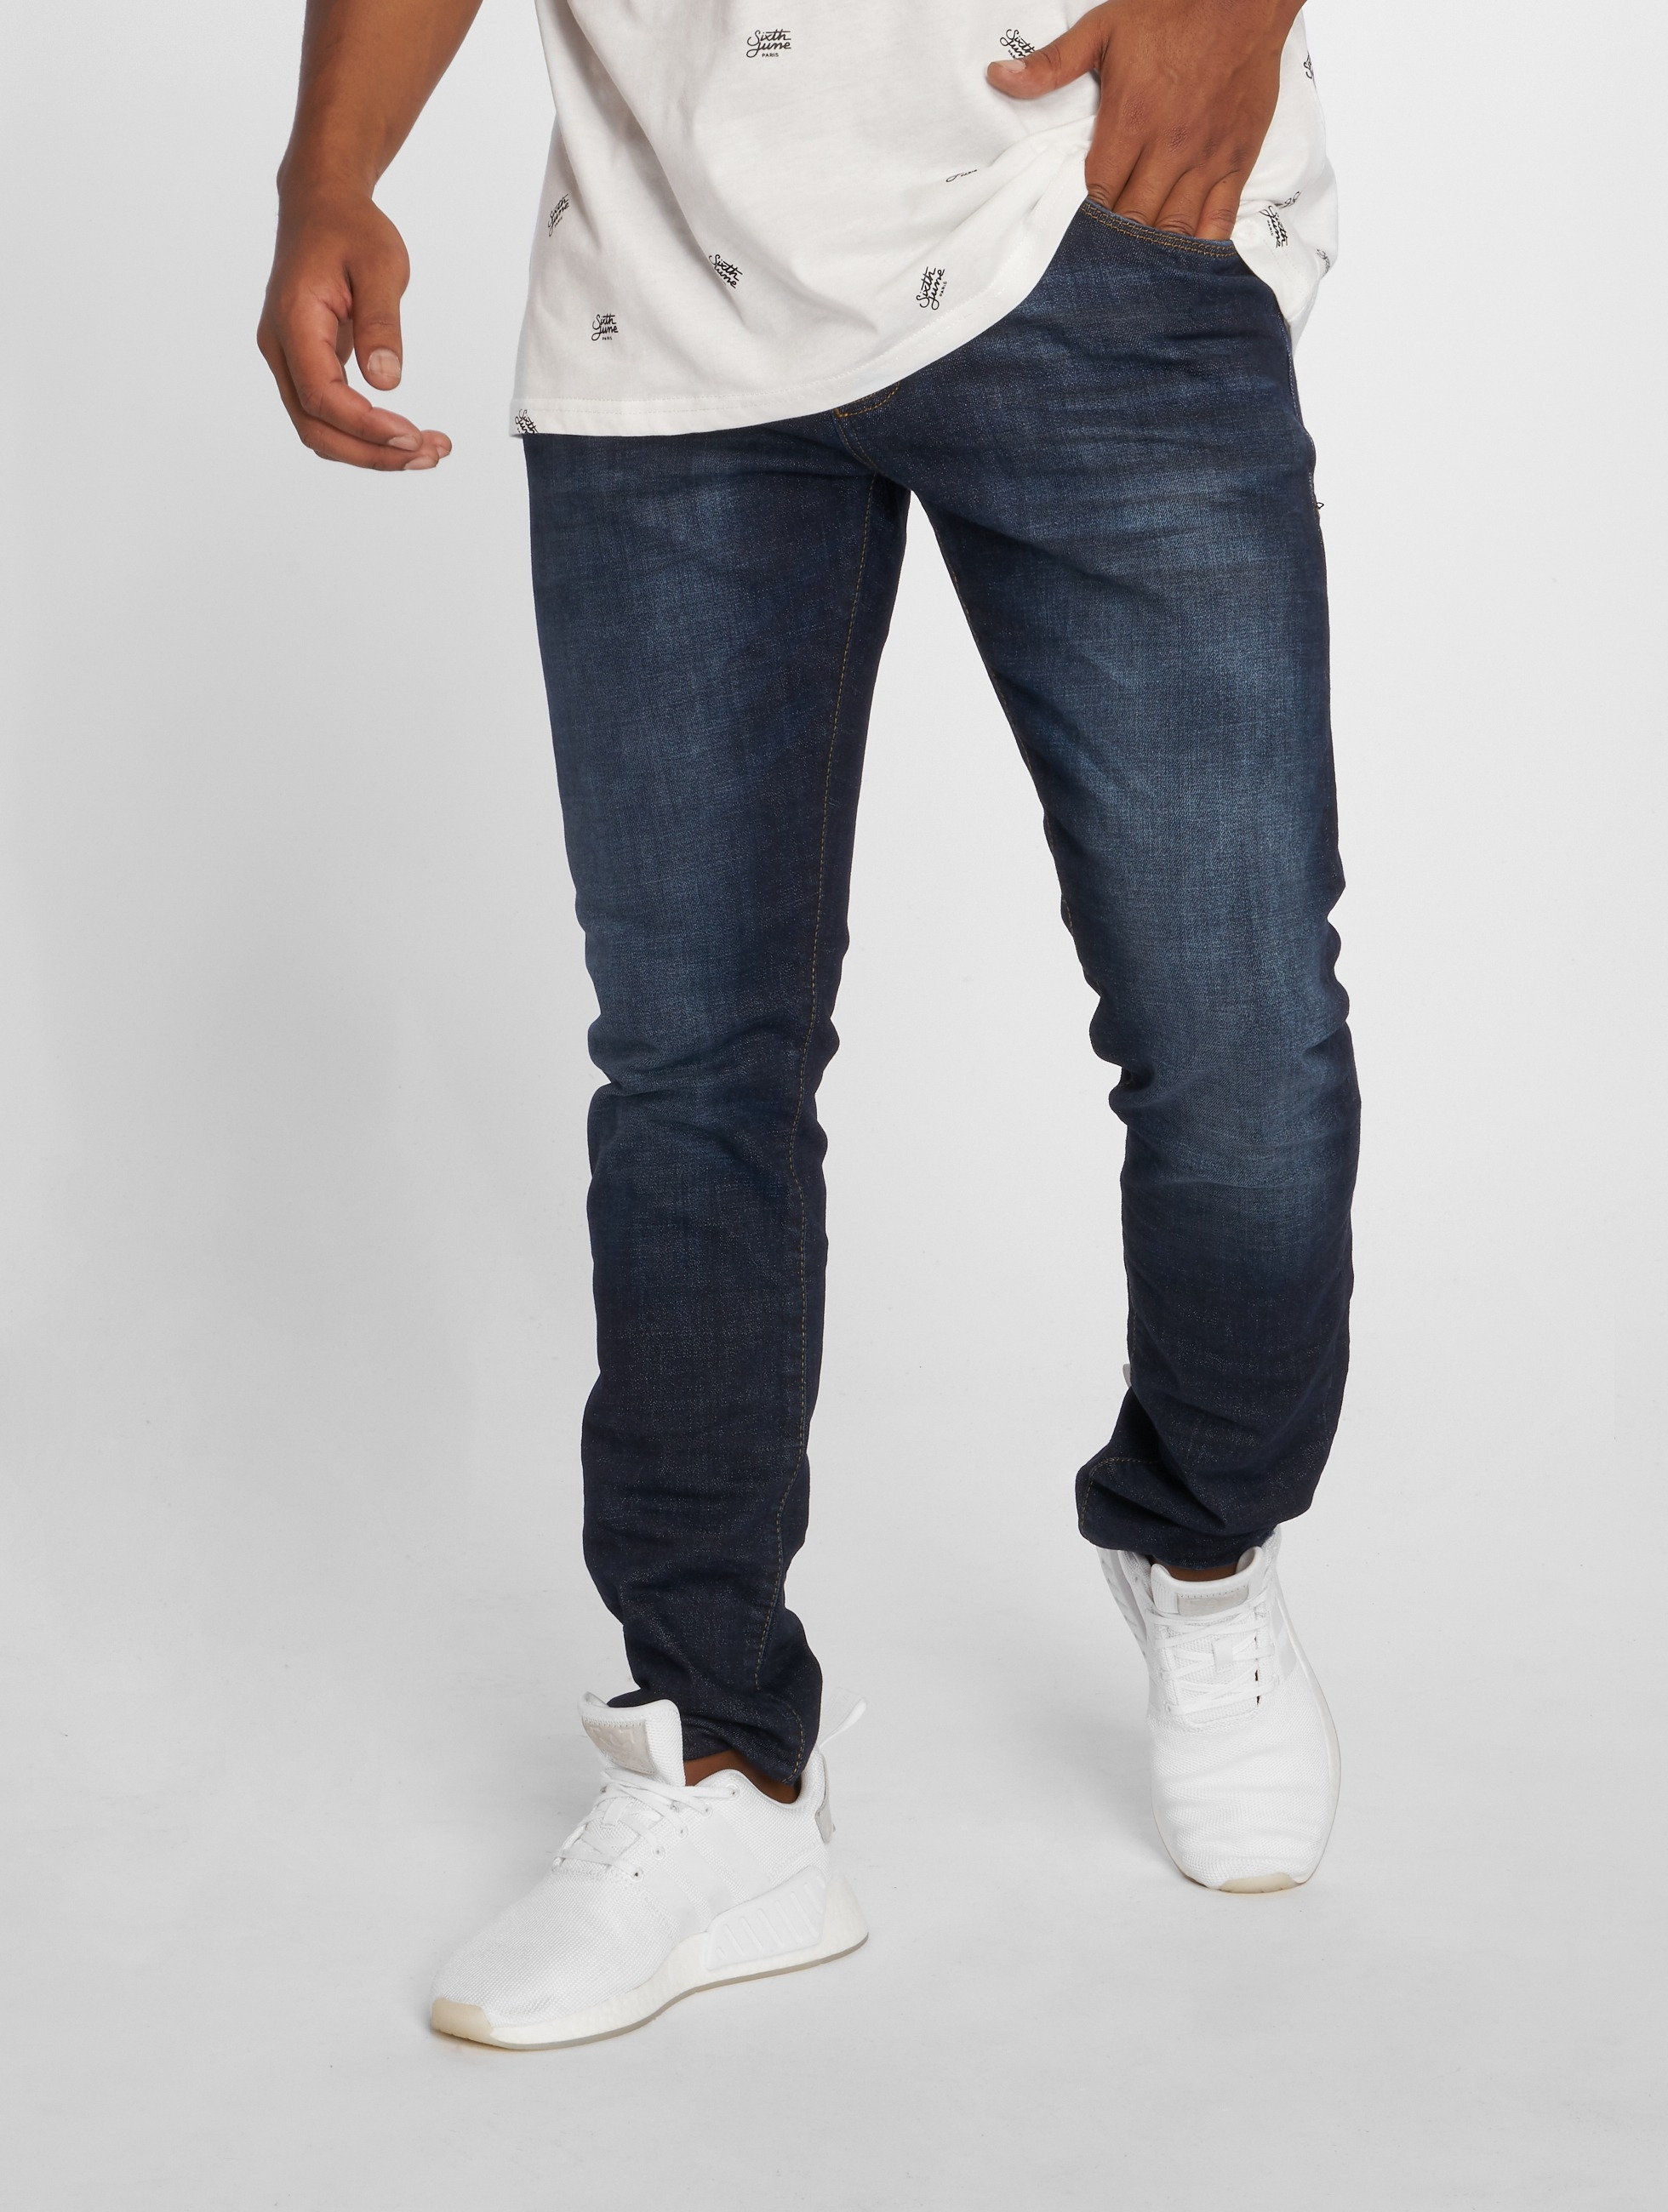 2Y / Slim Fit Jeans Corrdo in blue W 31